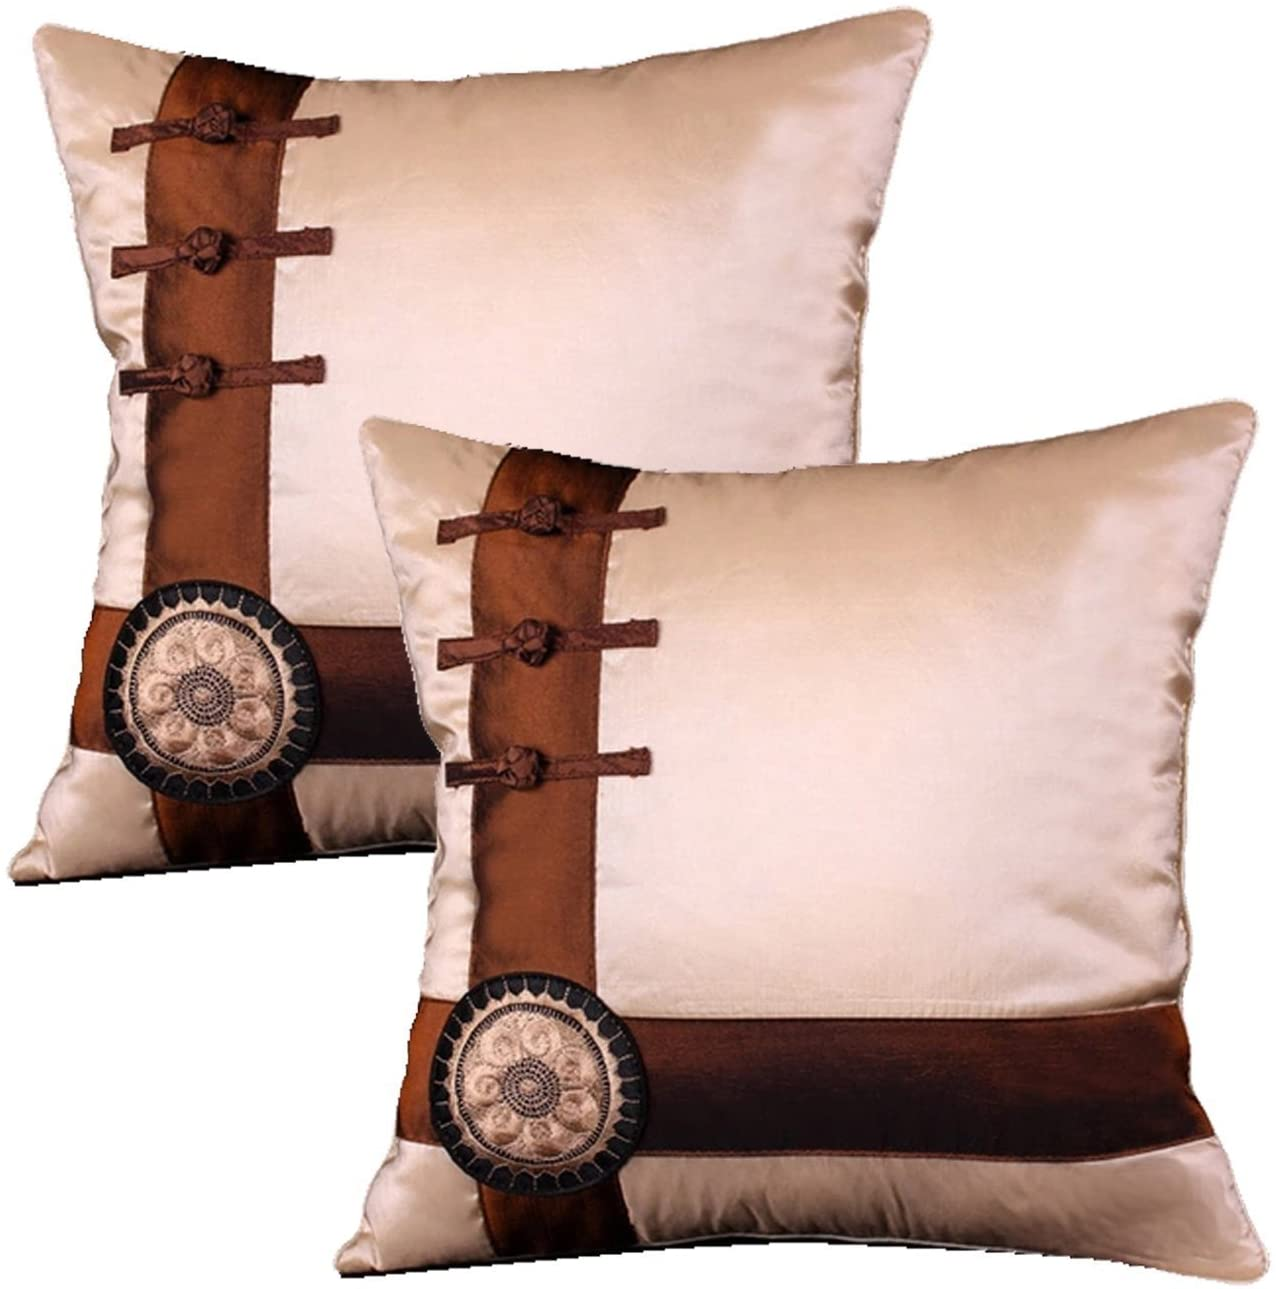 Queenie - 2 Pcs Silky Decorative Embroidered Chinese/oriental Pillowcase Series II Cushion Cover for Sofa Throw Pillow Case 16 X 16 Inch 40 X 40 Cm (Cross with Chinese Knots Color Ivory)